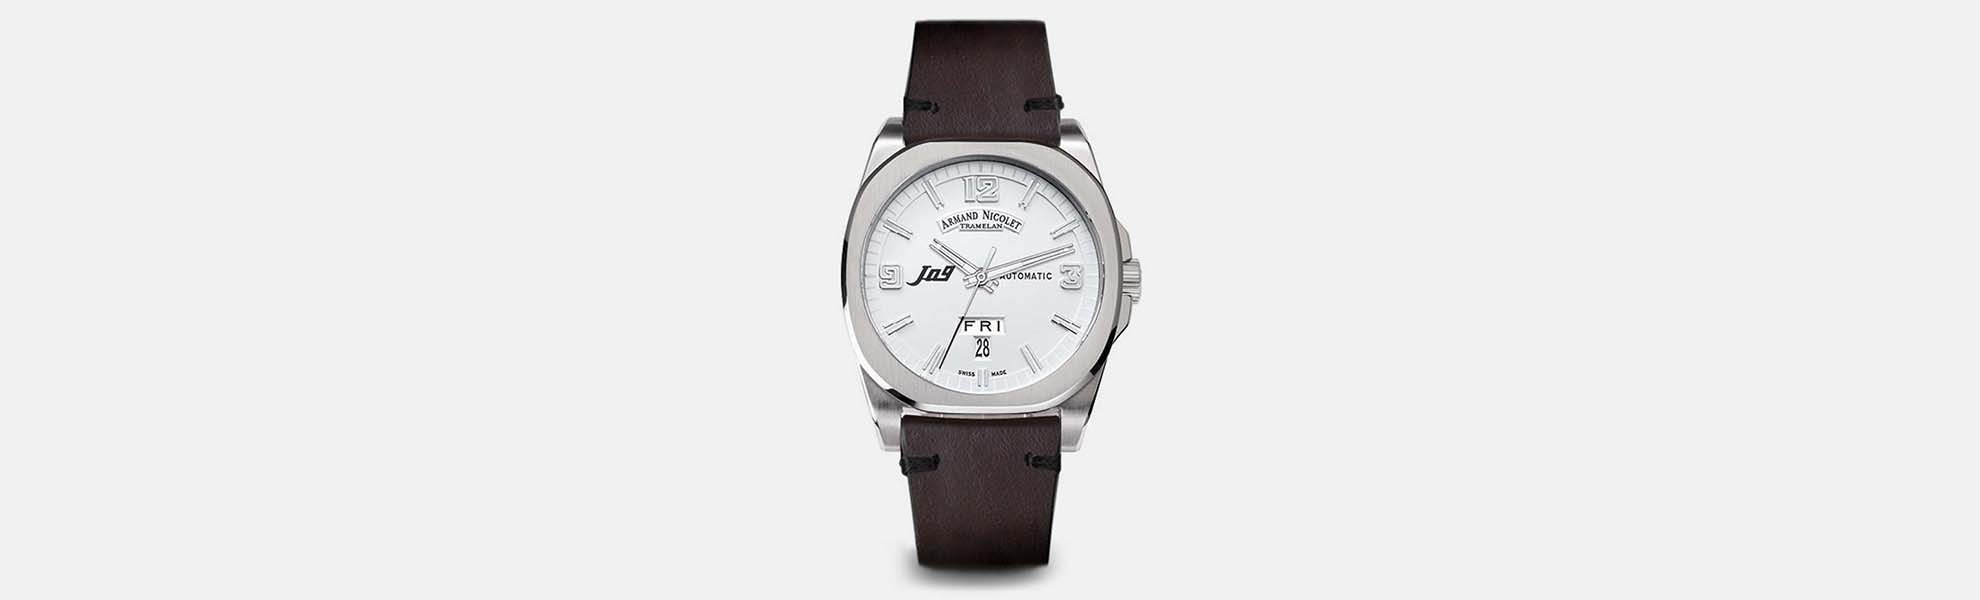 Armand Nicolet J09 9650 Automatic Watch